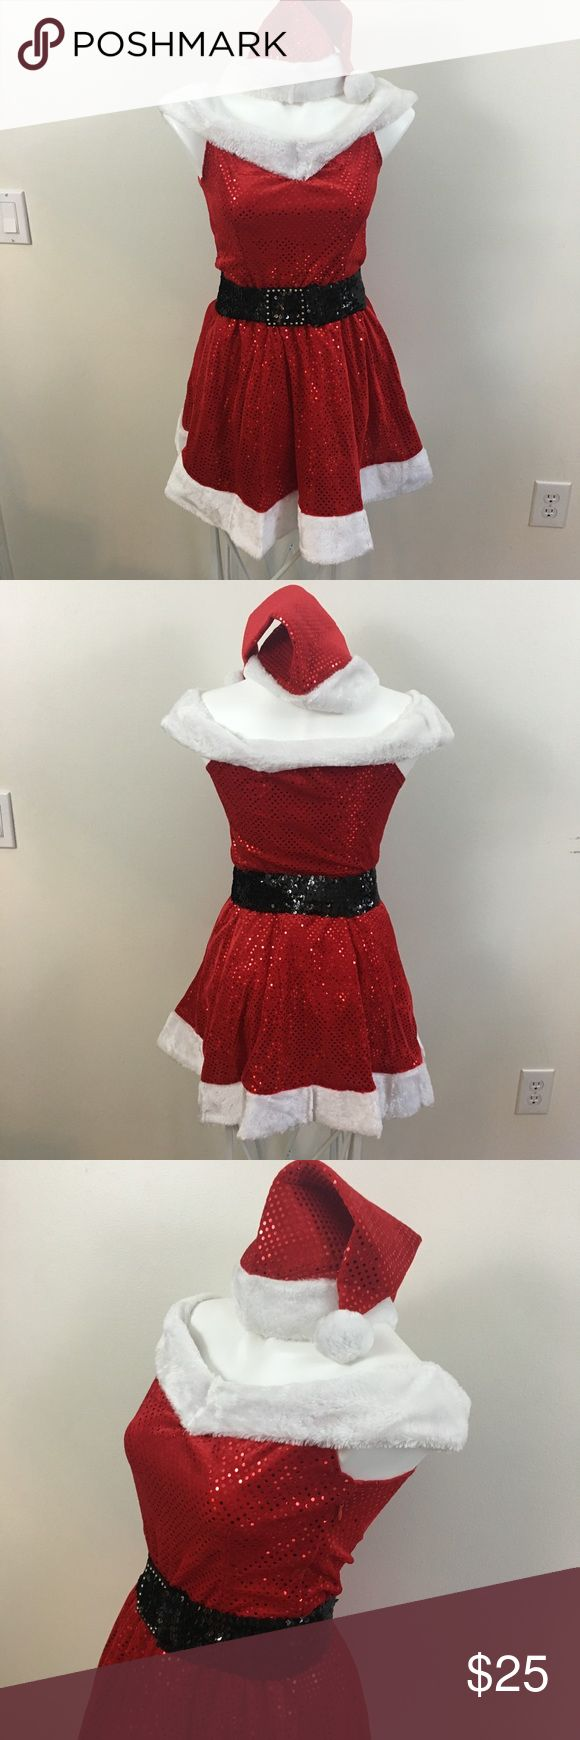 Sexy Santa Dress Sexy Santa dress, includes hat belt and dress, zipper on the side, brand new in the package Dresses